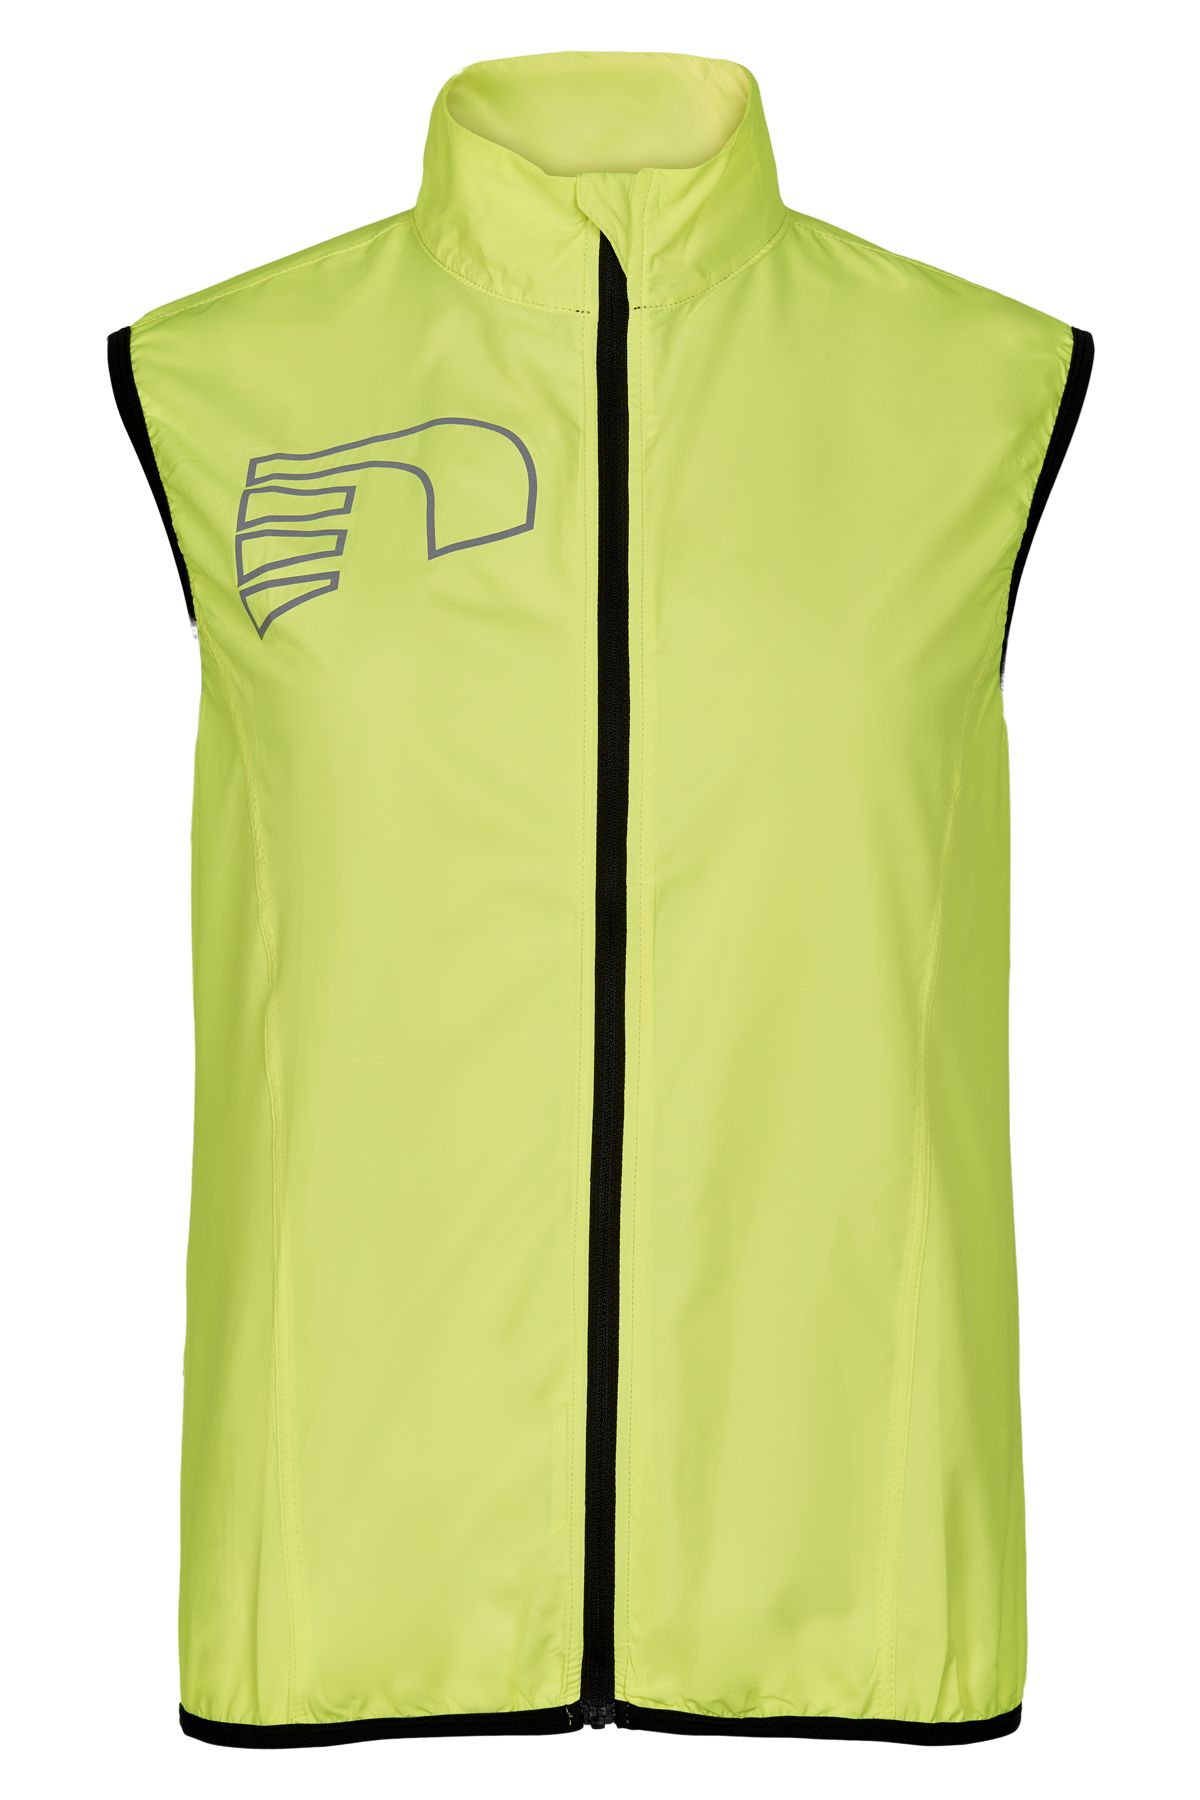 Newline Lady Core Vest (Neon Yellow)